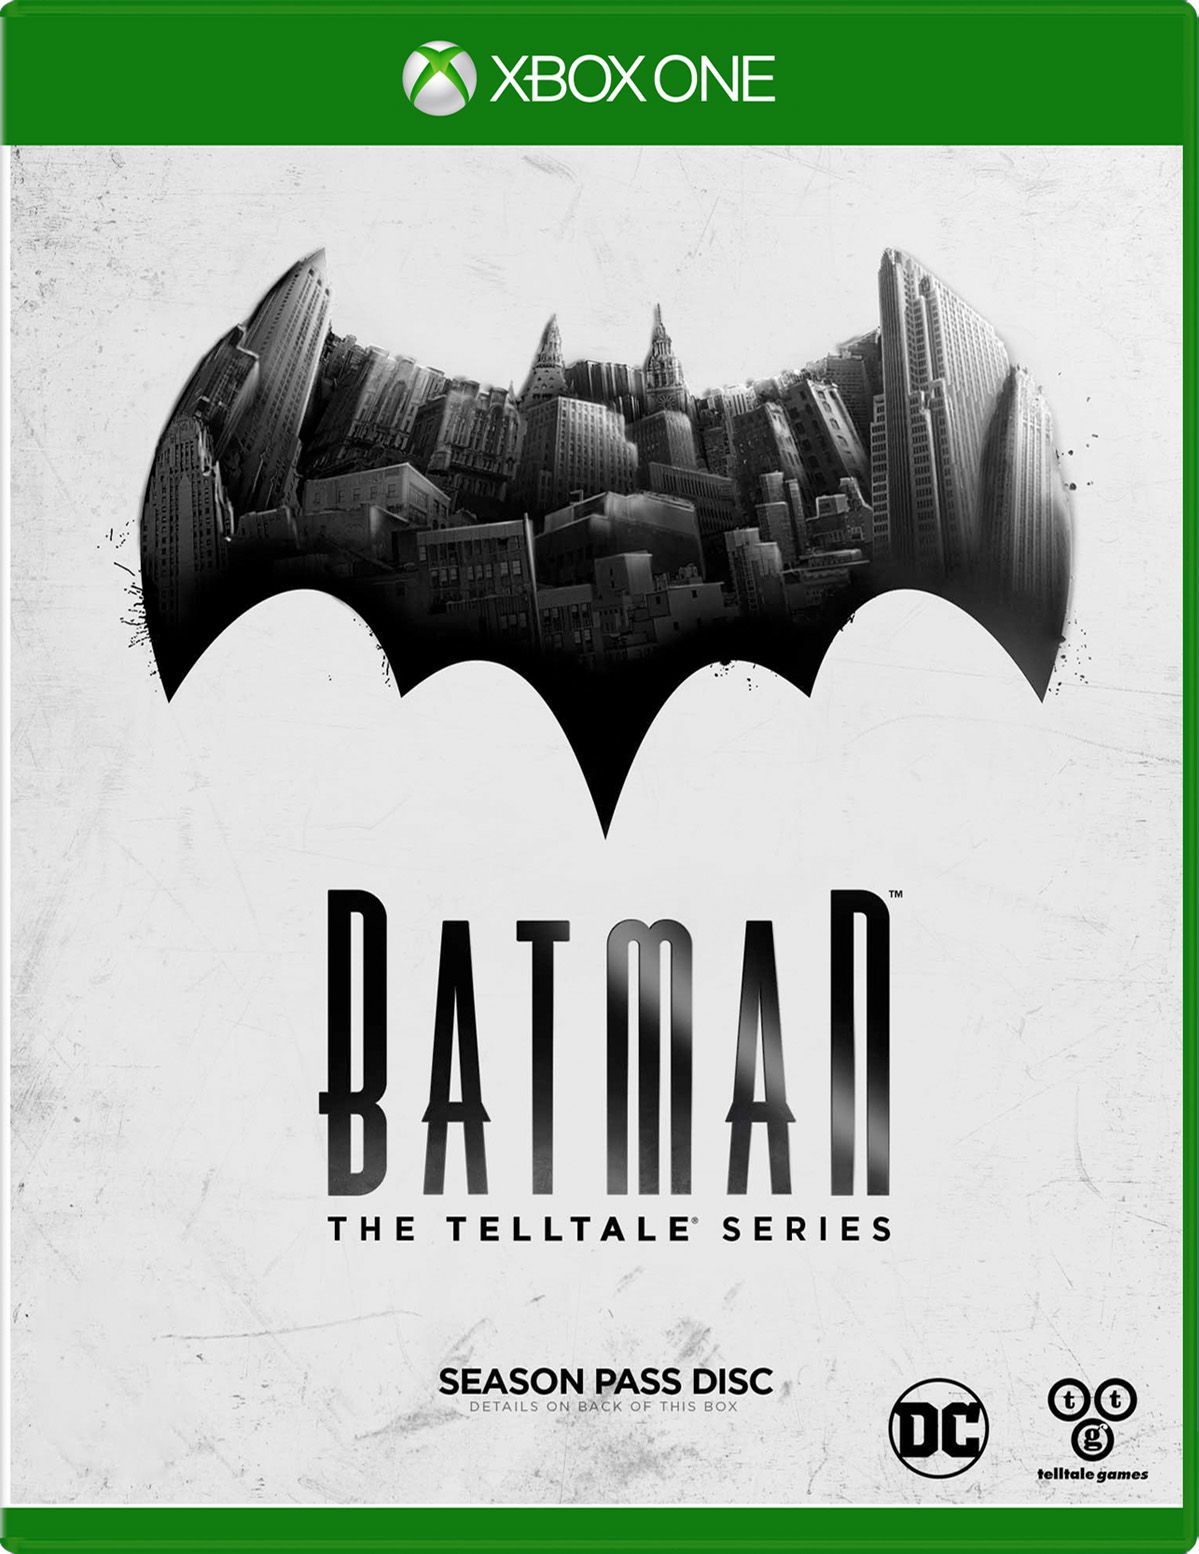 Batman - The Telltale Series for Xbox One (Season Pass)